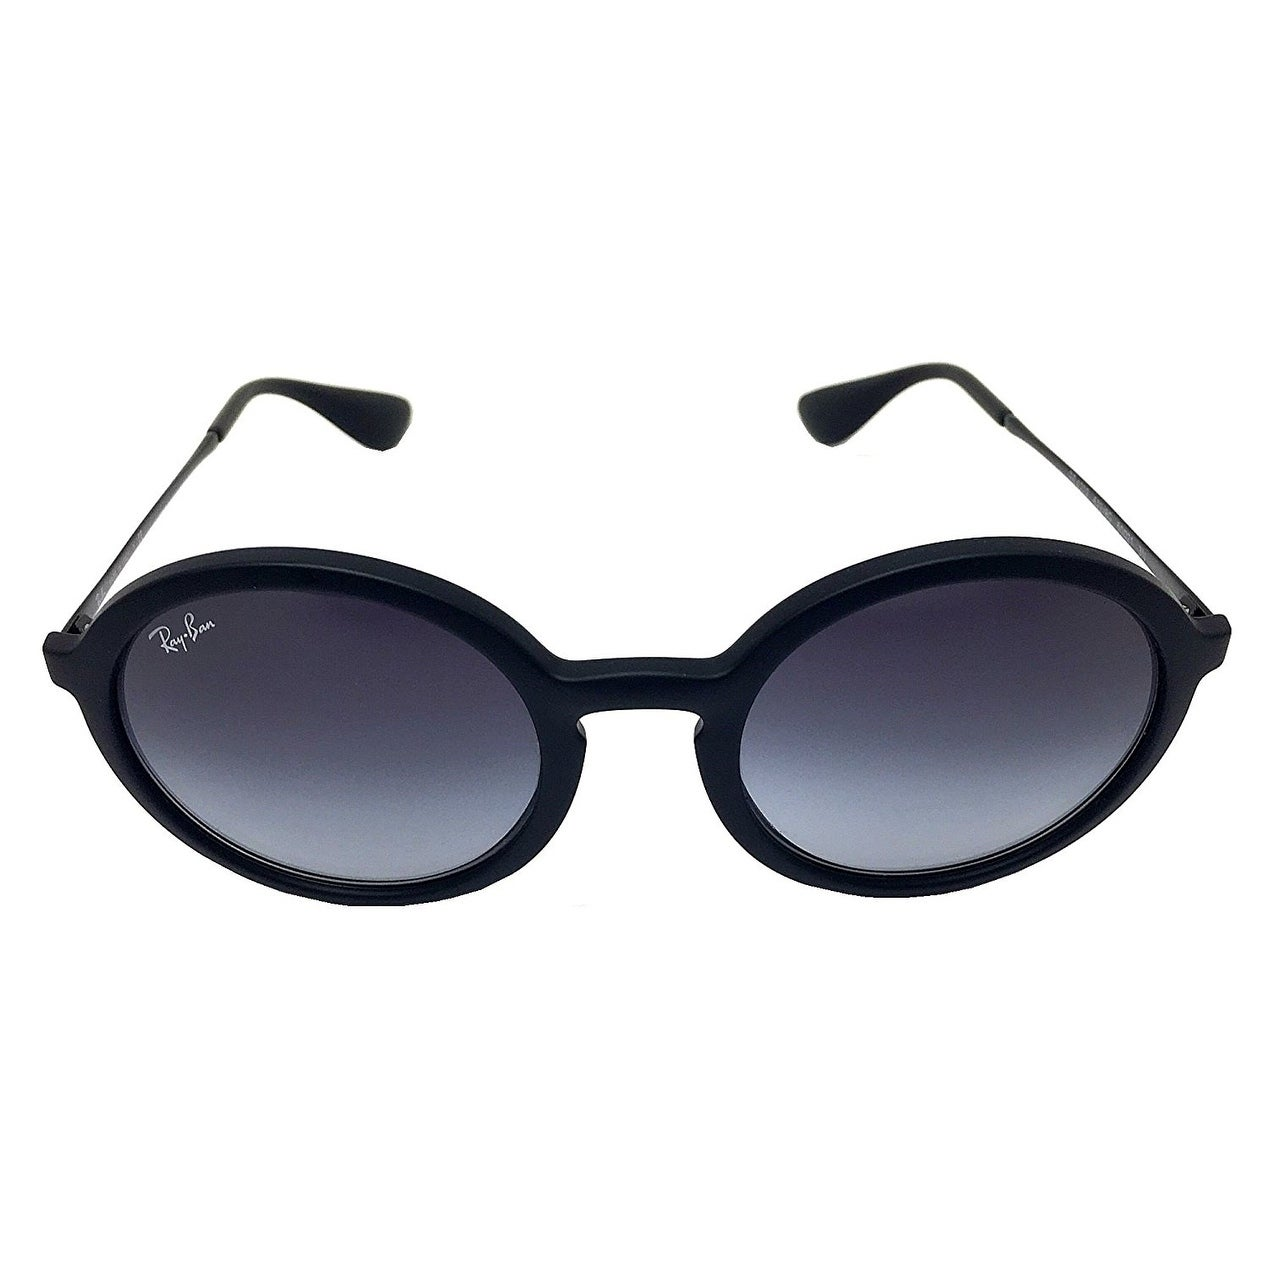 8af3b9c810c Shop Ray-Ban Unisex RB4222 Black Frame Grey Gradient 50mm Lens Sunglasses -  Free Shipping Today - Overstock.com - 17754375